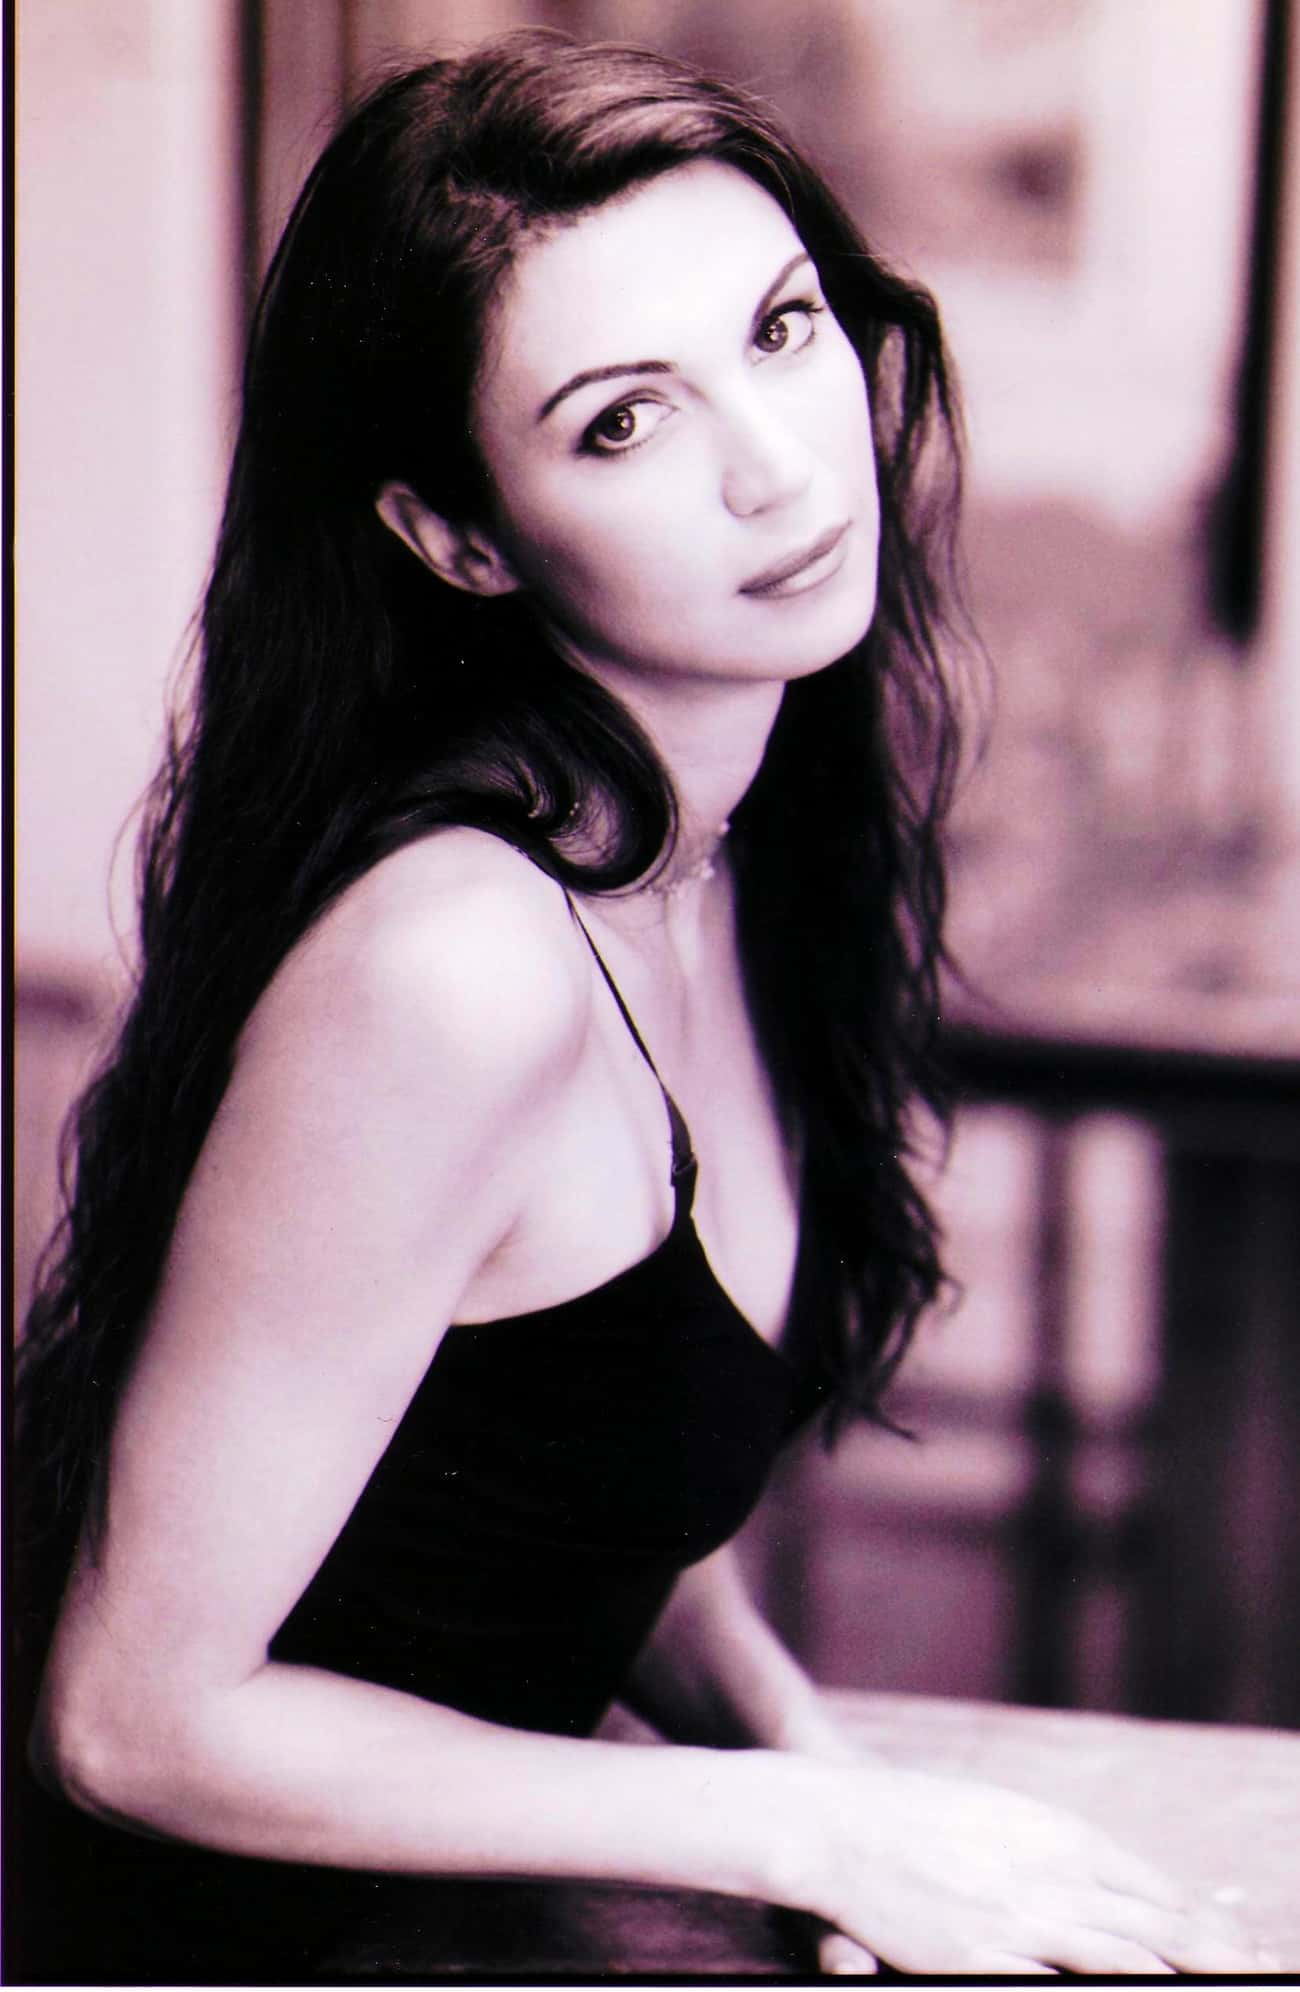 Shiva Rose is listed (or ranked) 3 on the list The Most Stunning Iranian Actresses